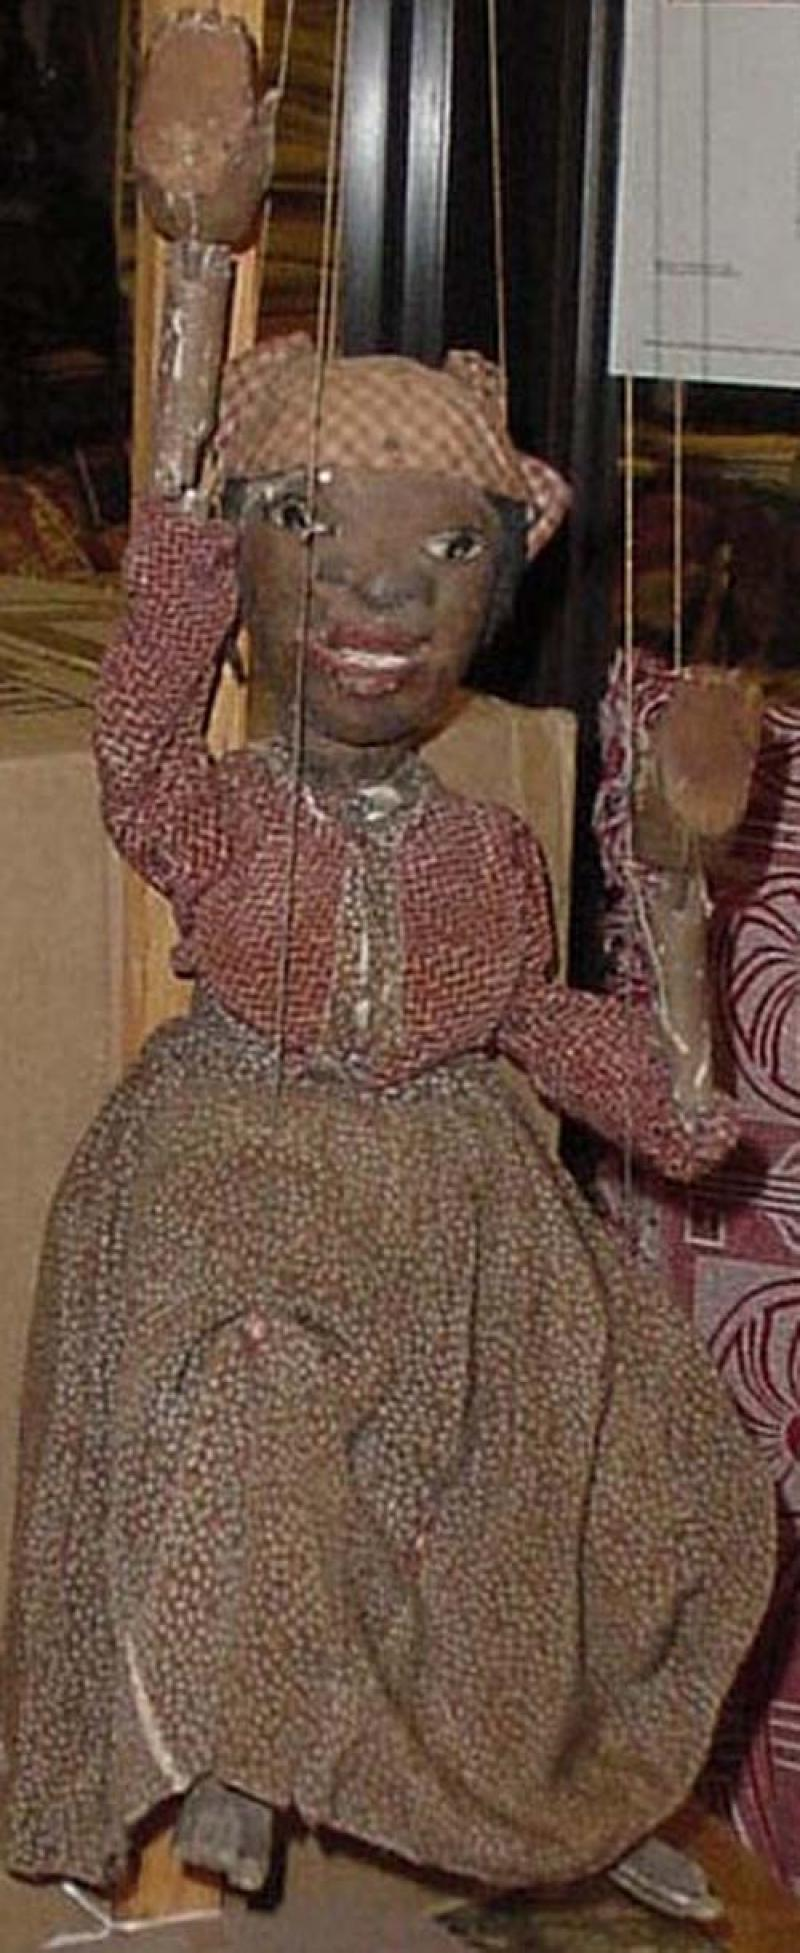 ANTIQUE MARIONETTE of a BLACK WOMAN, 19th c